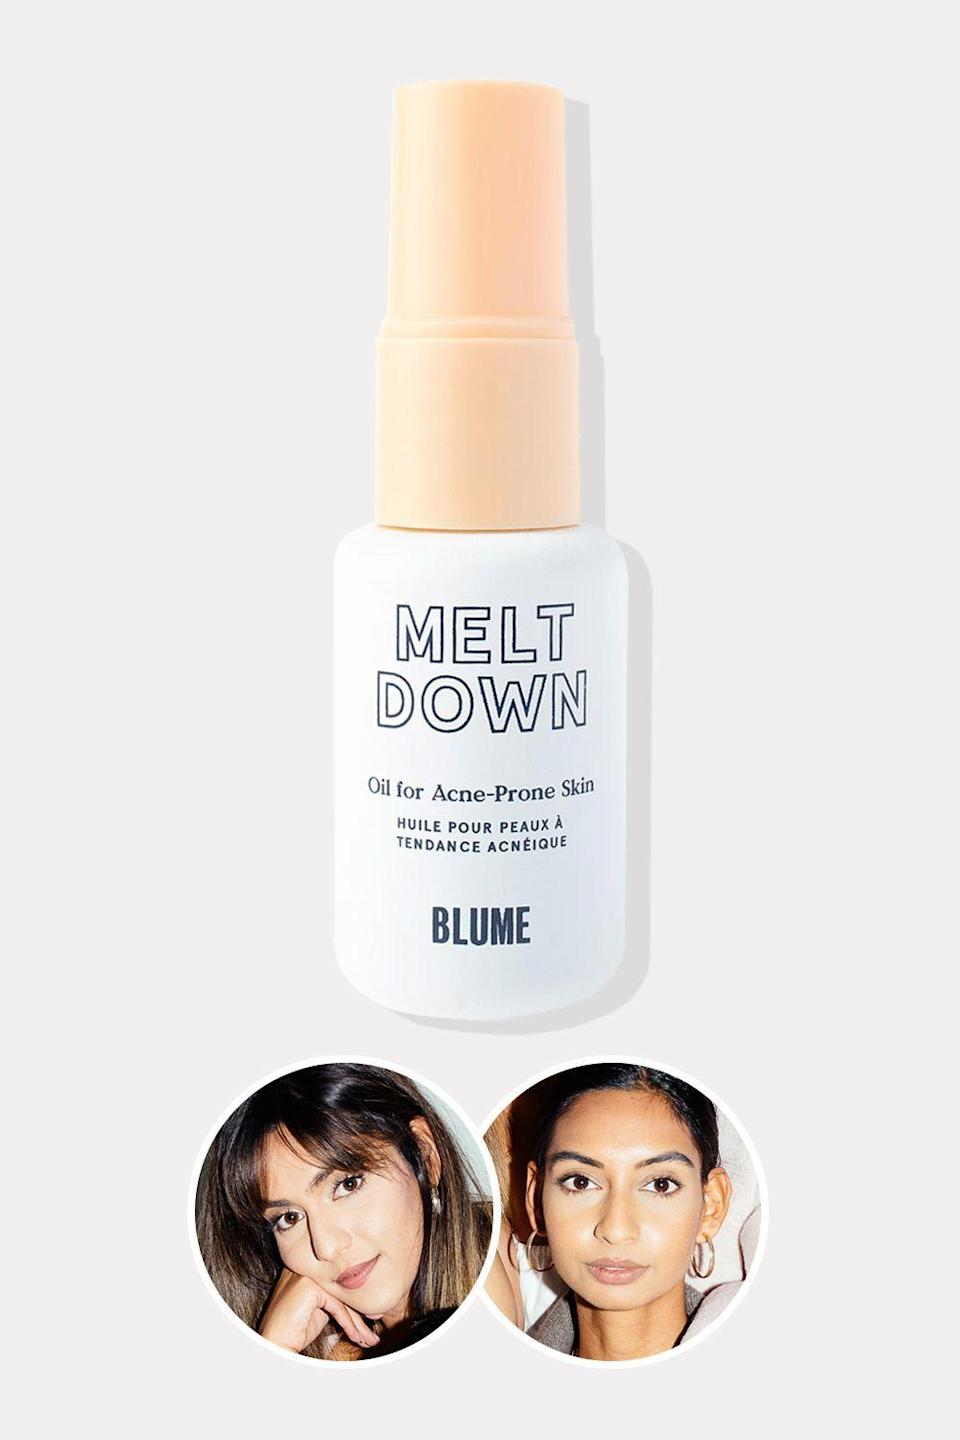 """<p><strong>Blume</strong></p><p>ulta.com</p><p><strong>$28.00</strong></p><p><a href=""""https://go.redirectingat.com?id=74968X1596630&url=https%3A%2F%2Fwww.ulta.com%2Fmeltdown-acne-oil%3FproductId%3Dpimprod2024300&sref=https%3A%2F%2Fwww.oprahdaily.com%2Fbeauty%2Fskin-makeup%2Fg36454382%2Fasian-beauty-brands%2F"""" rel=""""nofollow noopener"""" target=""""_blank"""" data-ylk=""""slk:Shop Now"""" class=""""link rapid-noclick-resp"""">Shop Now</a></p><p>Taran and Bunny Ghatrora—the sisters behind clean beauty and self-care brand Blume—are on a mission to destigmatize menstruation and skin conditions associated with puberty, like acne. How are they doing it? By introducing products like the brand's Cloud 9 Cramp Oil, a blend of soothing essential oils to help minimize period pain and discomfort, and the Meltdown Acne Oil, which combines rosehip, blue tansy, and black seed oils to battle breakouts and nourish—not dehydrate—acne-prone skin. But stuff to buy is just part of the equation: Blume's blog is full of empowering and educational content, with articles on how to build confidence when you have acne and all you need to know about UTIs. </p>"""